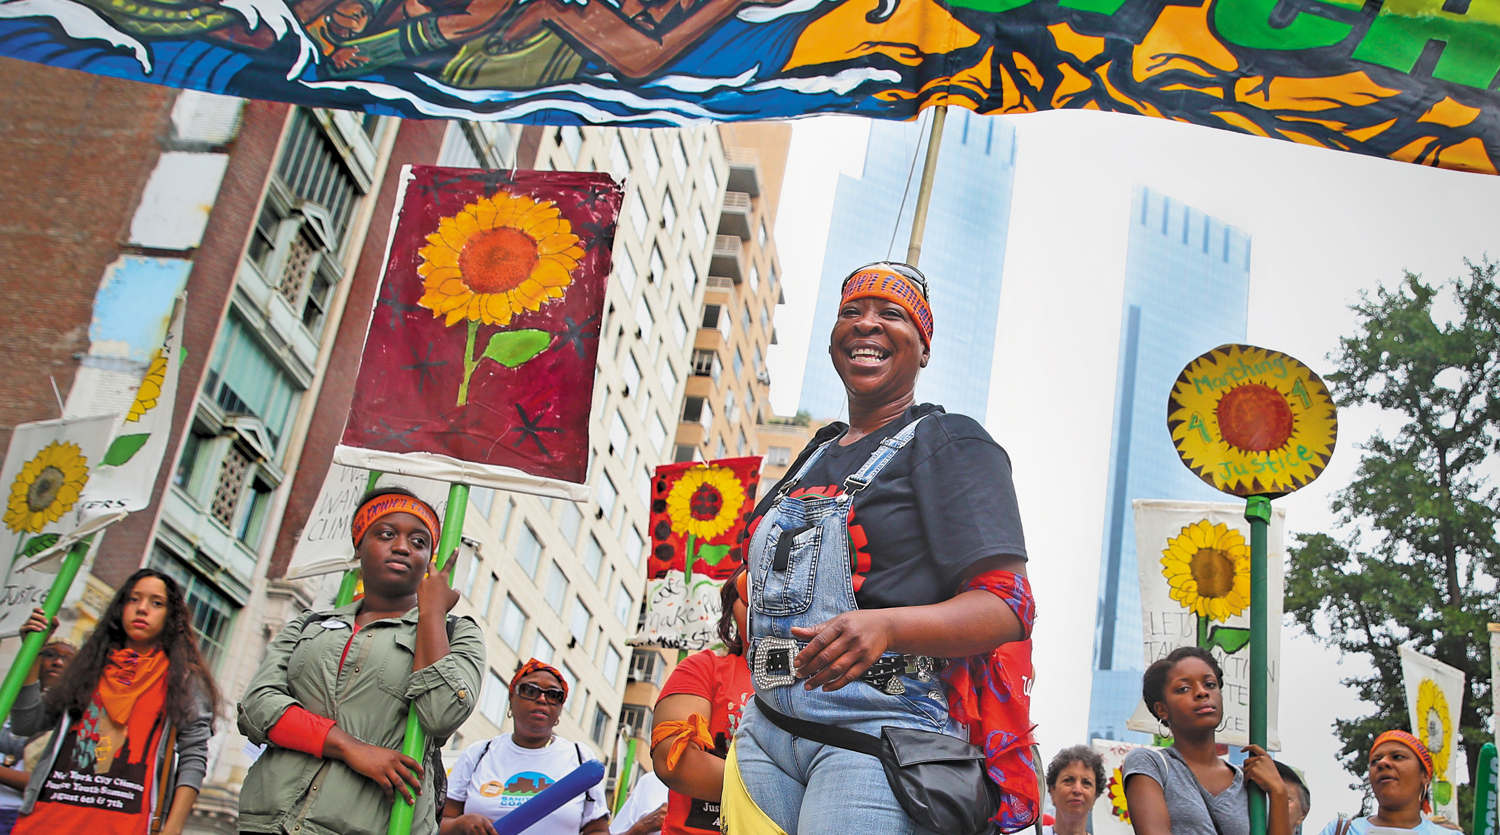 Demonstrators-People's-Climate-March-on-September-21-2014-New-York-City